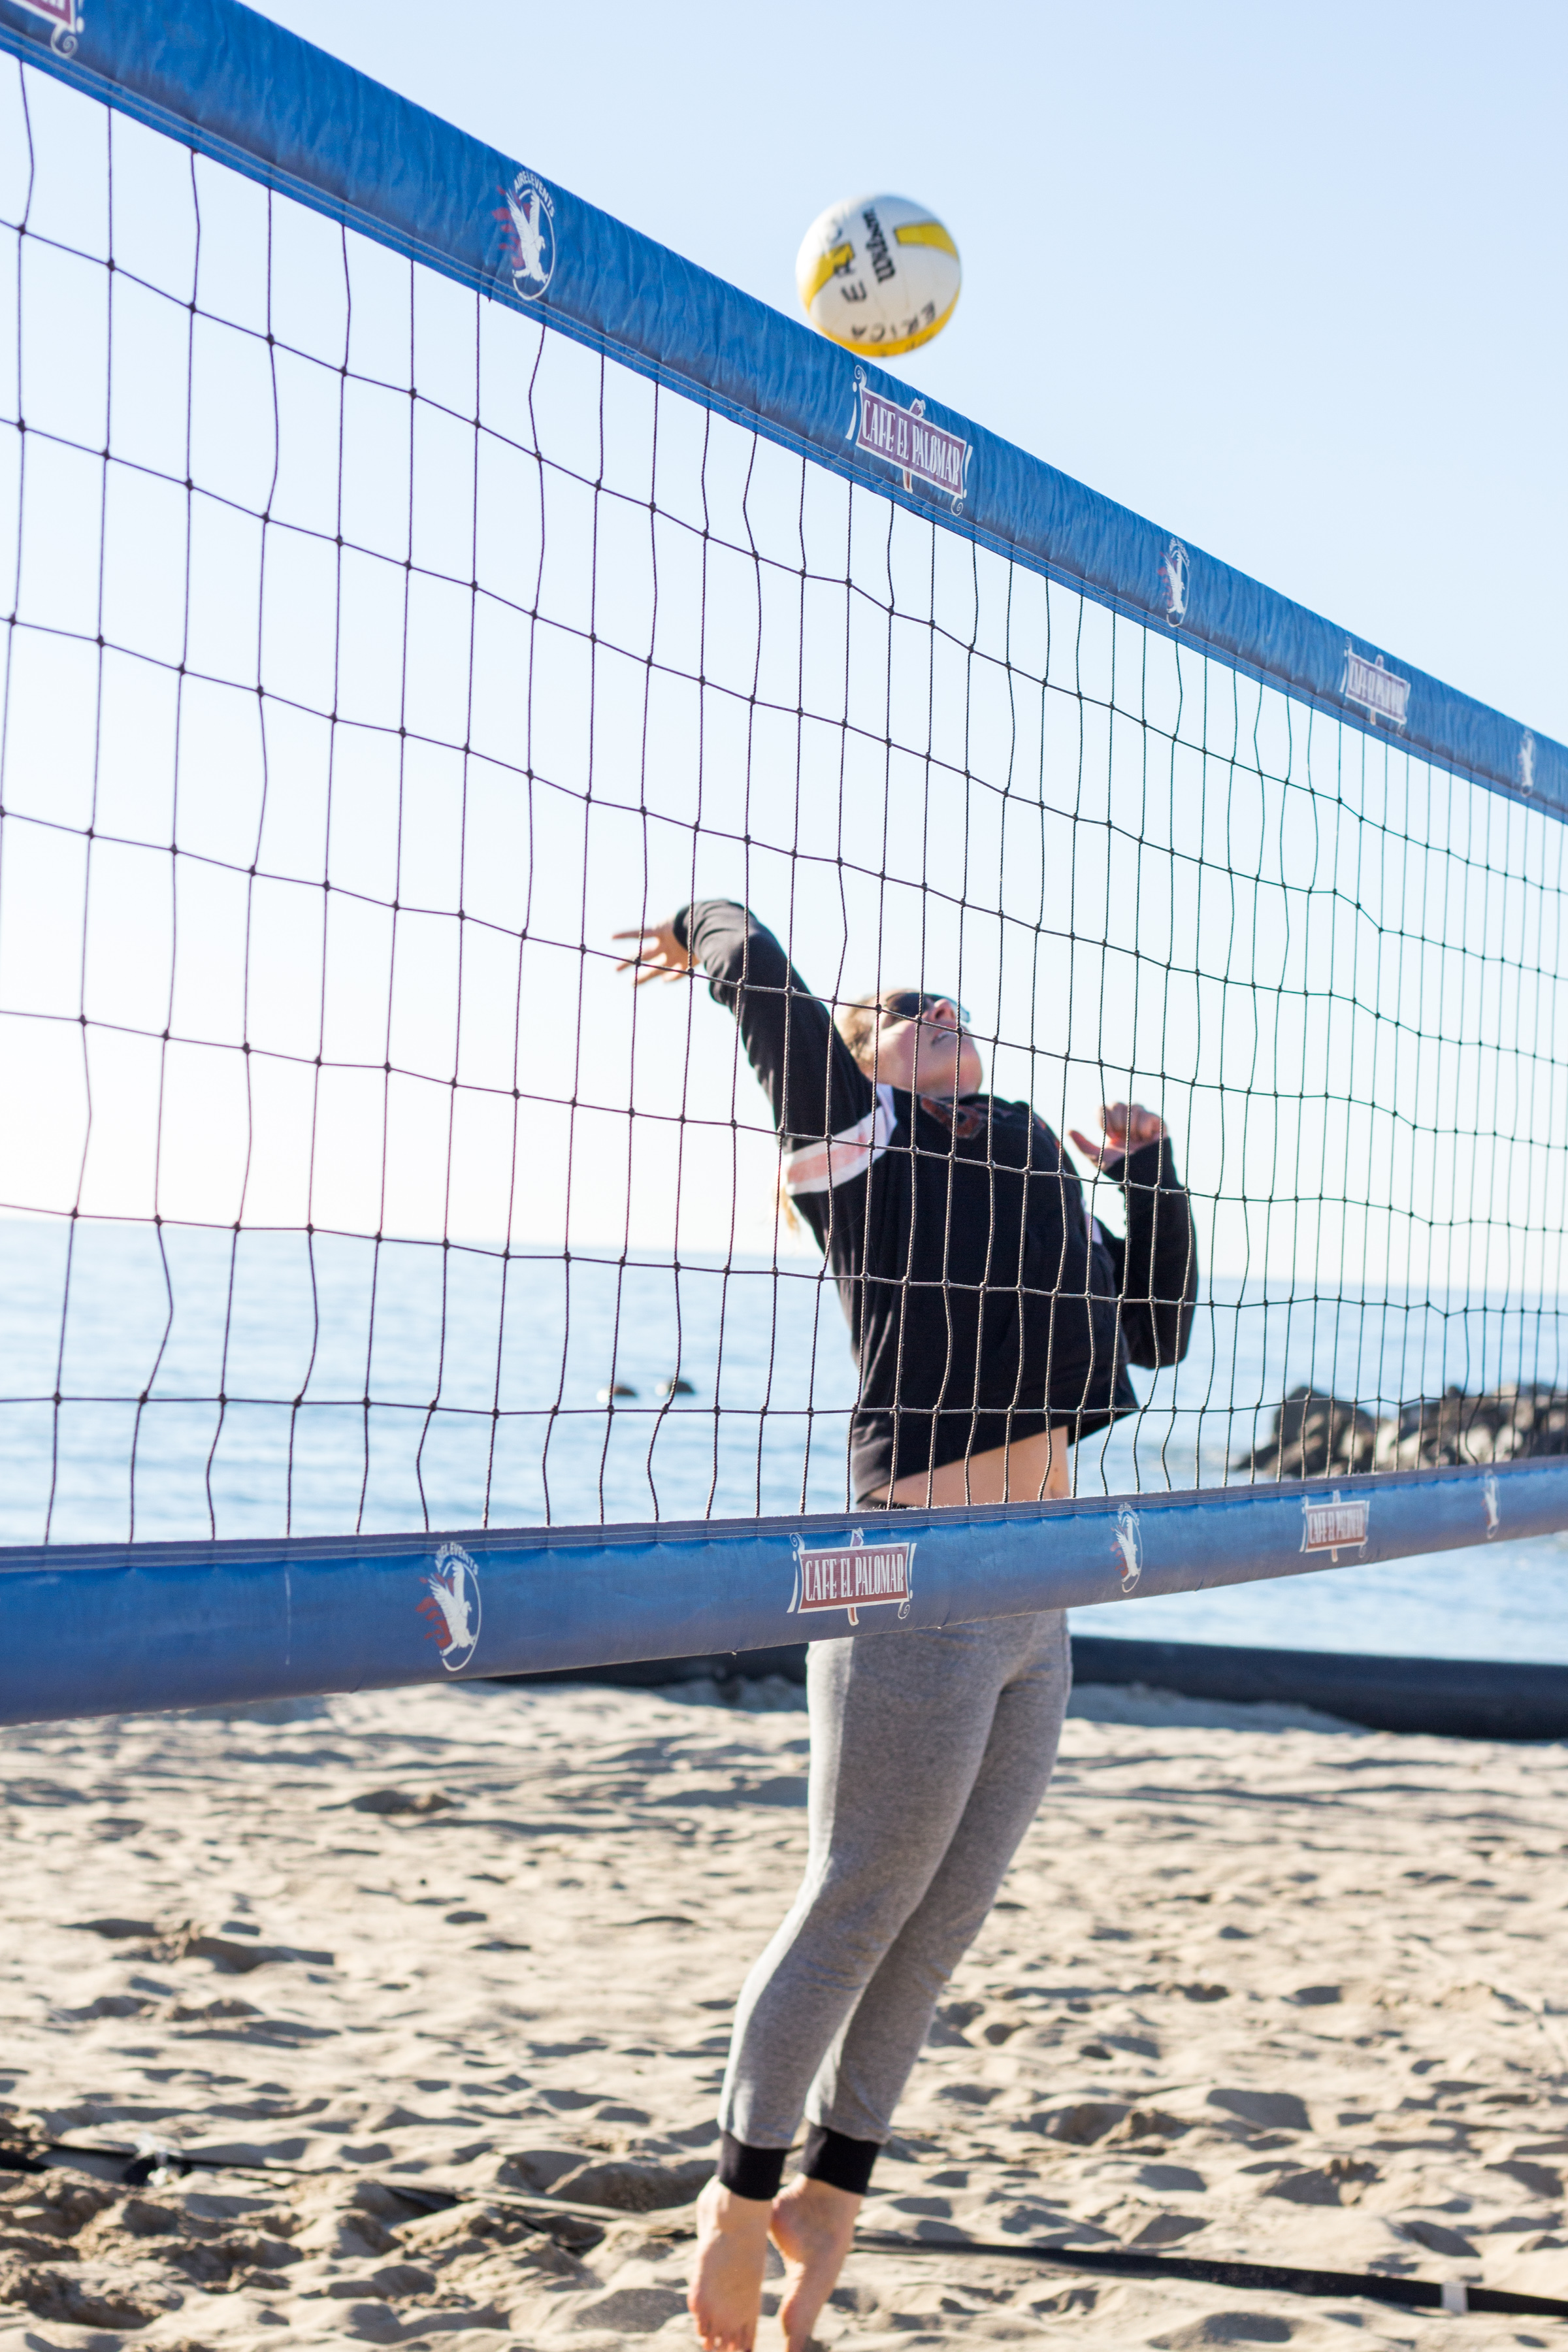 Make time for a little beach volleyball with friends. It's fun in the sun  and  a great weekend.